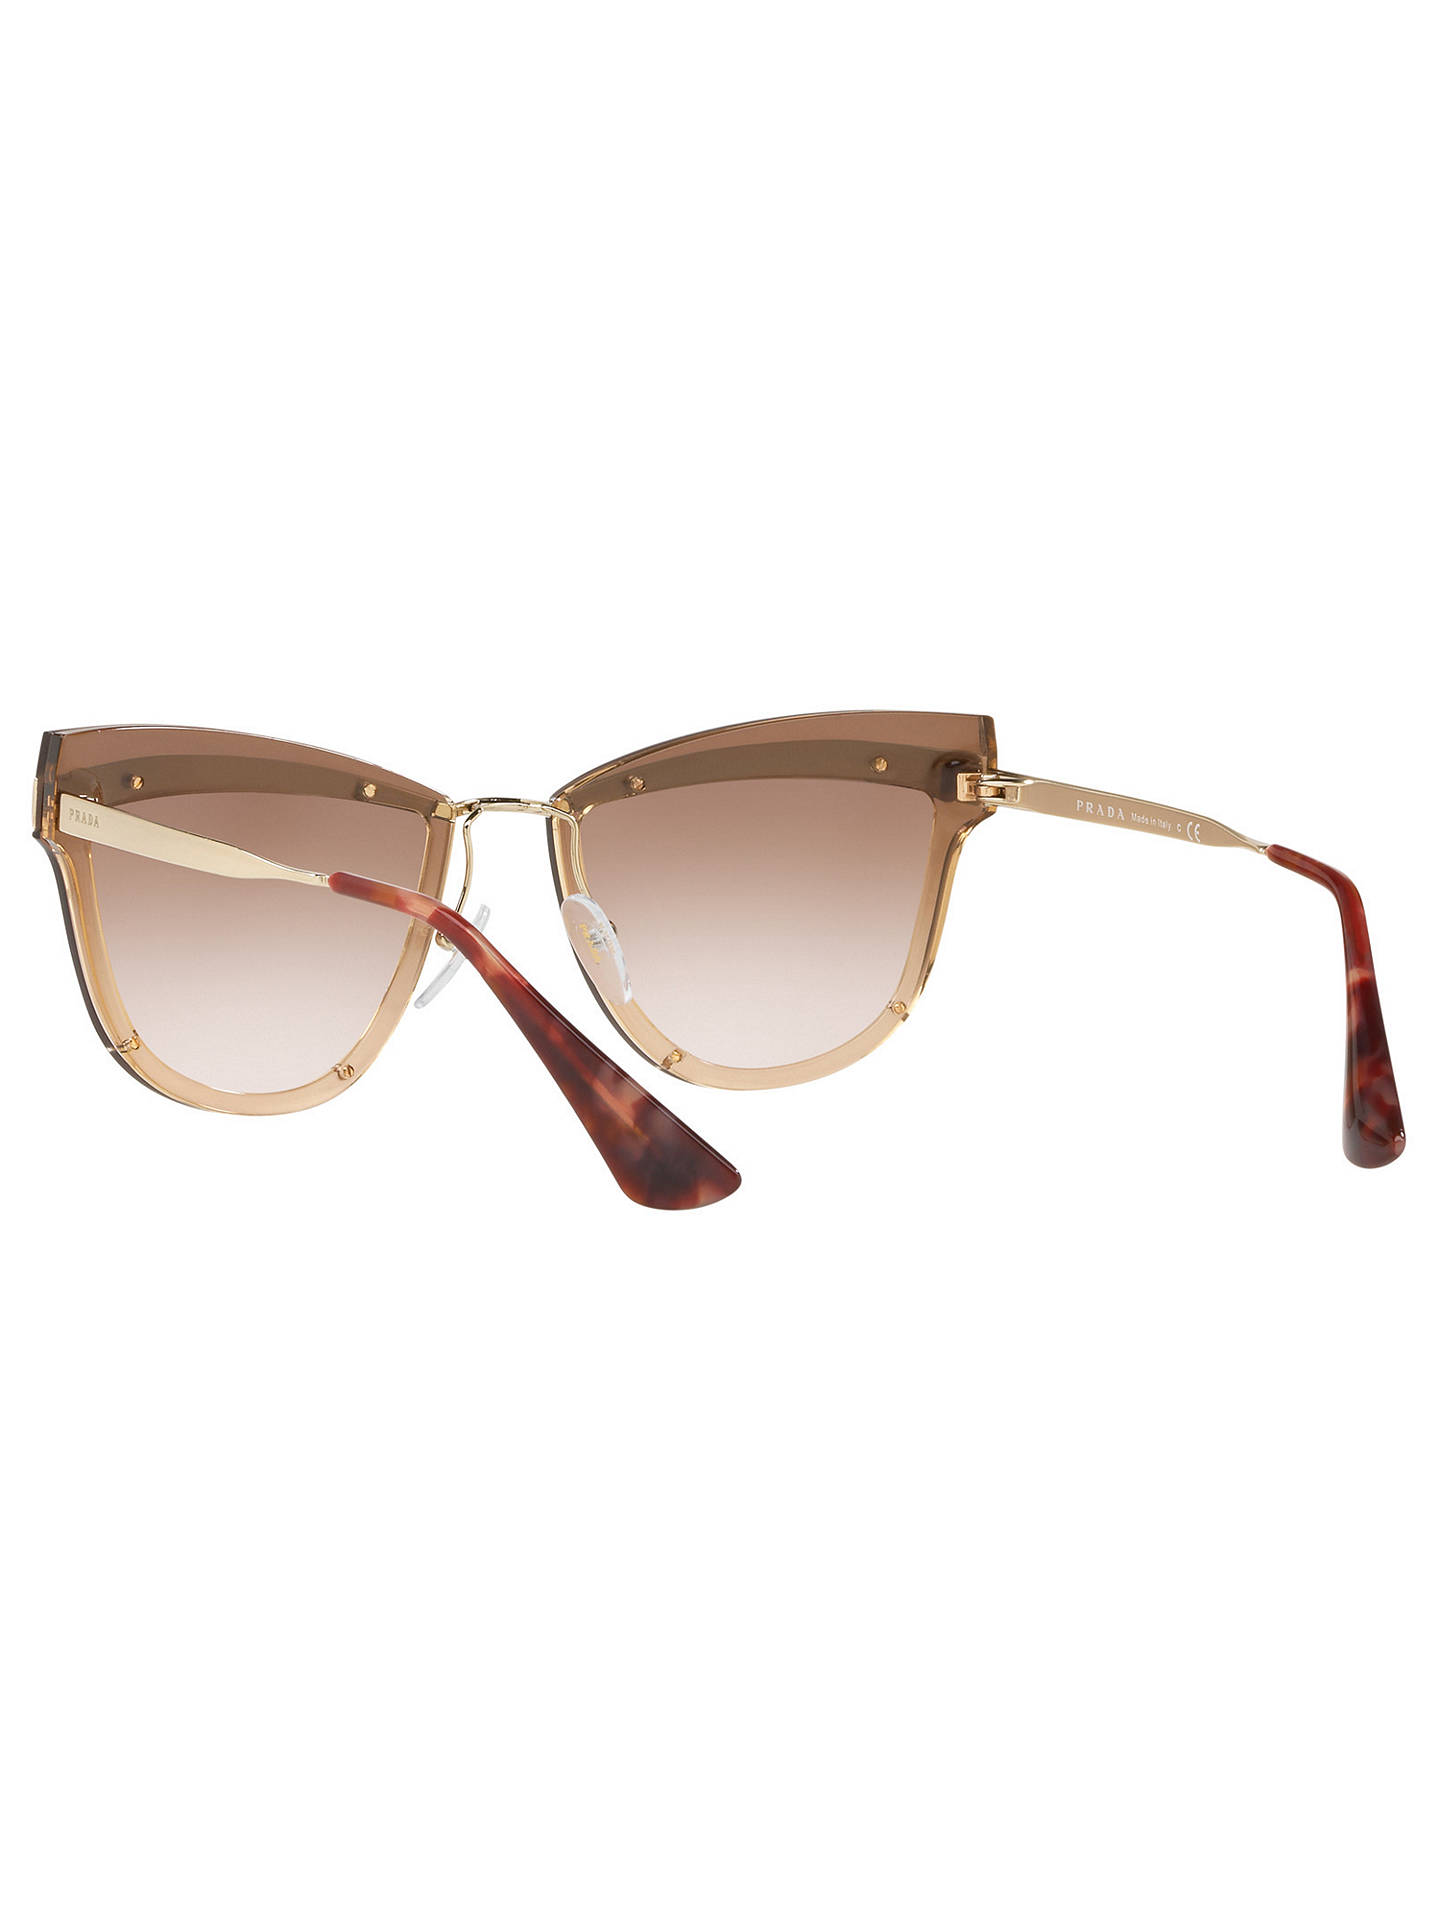 Buy Prada PR 12US Women's Cat's Eye Sunglasses, Rose Gold/Brown Online at johnlewis.com